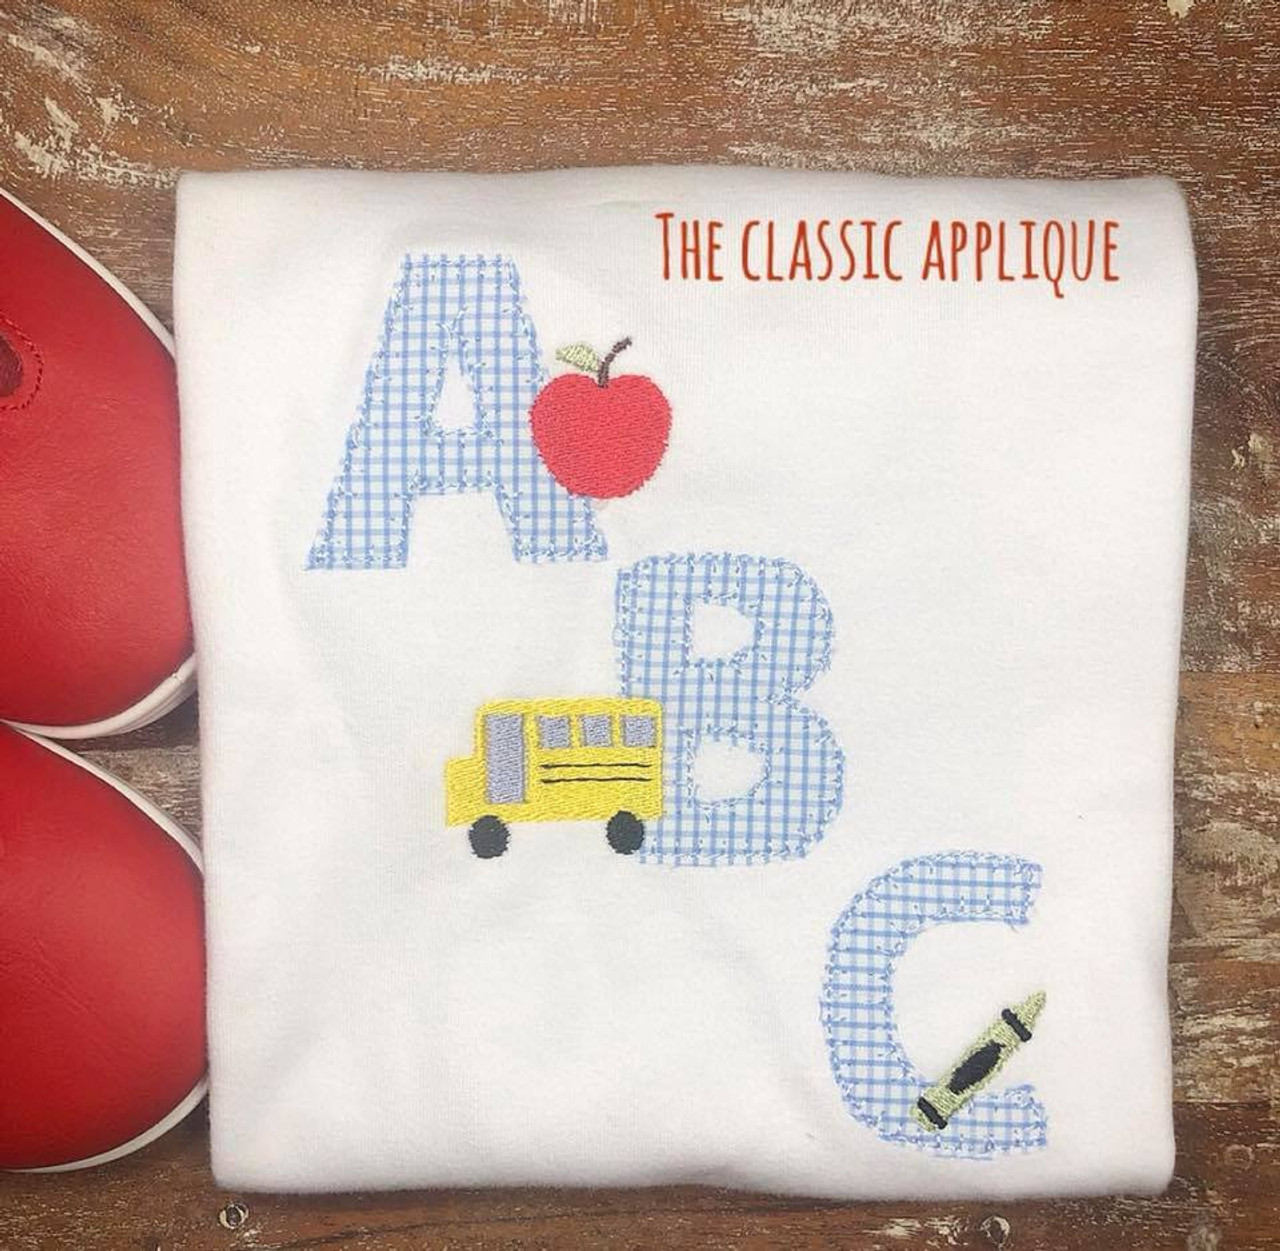 Back To School Abc Blanket Stitch Applique With Apple Bus And